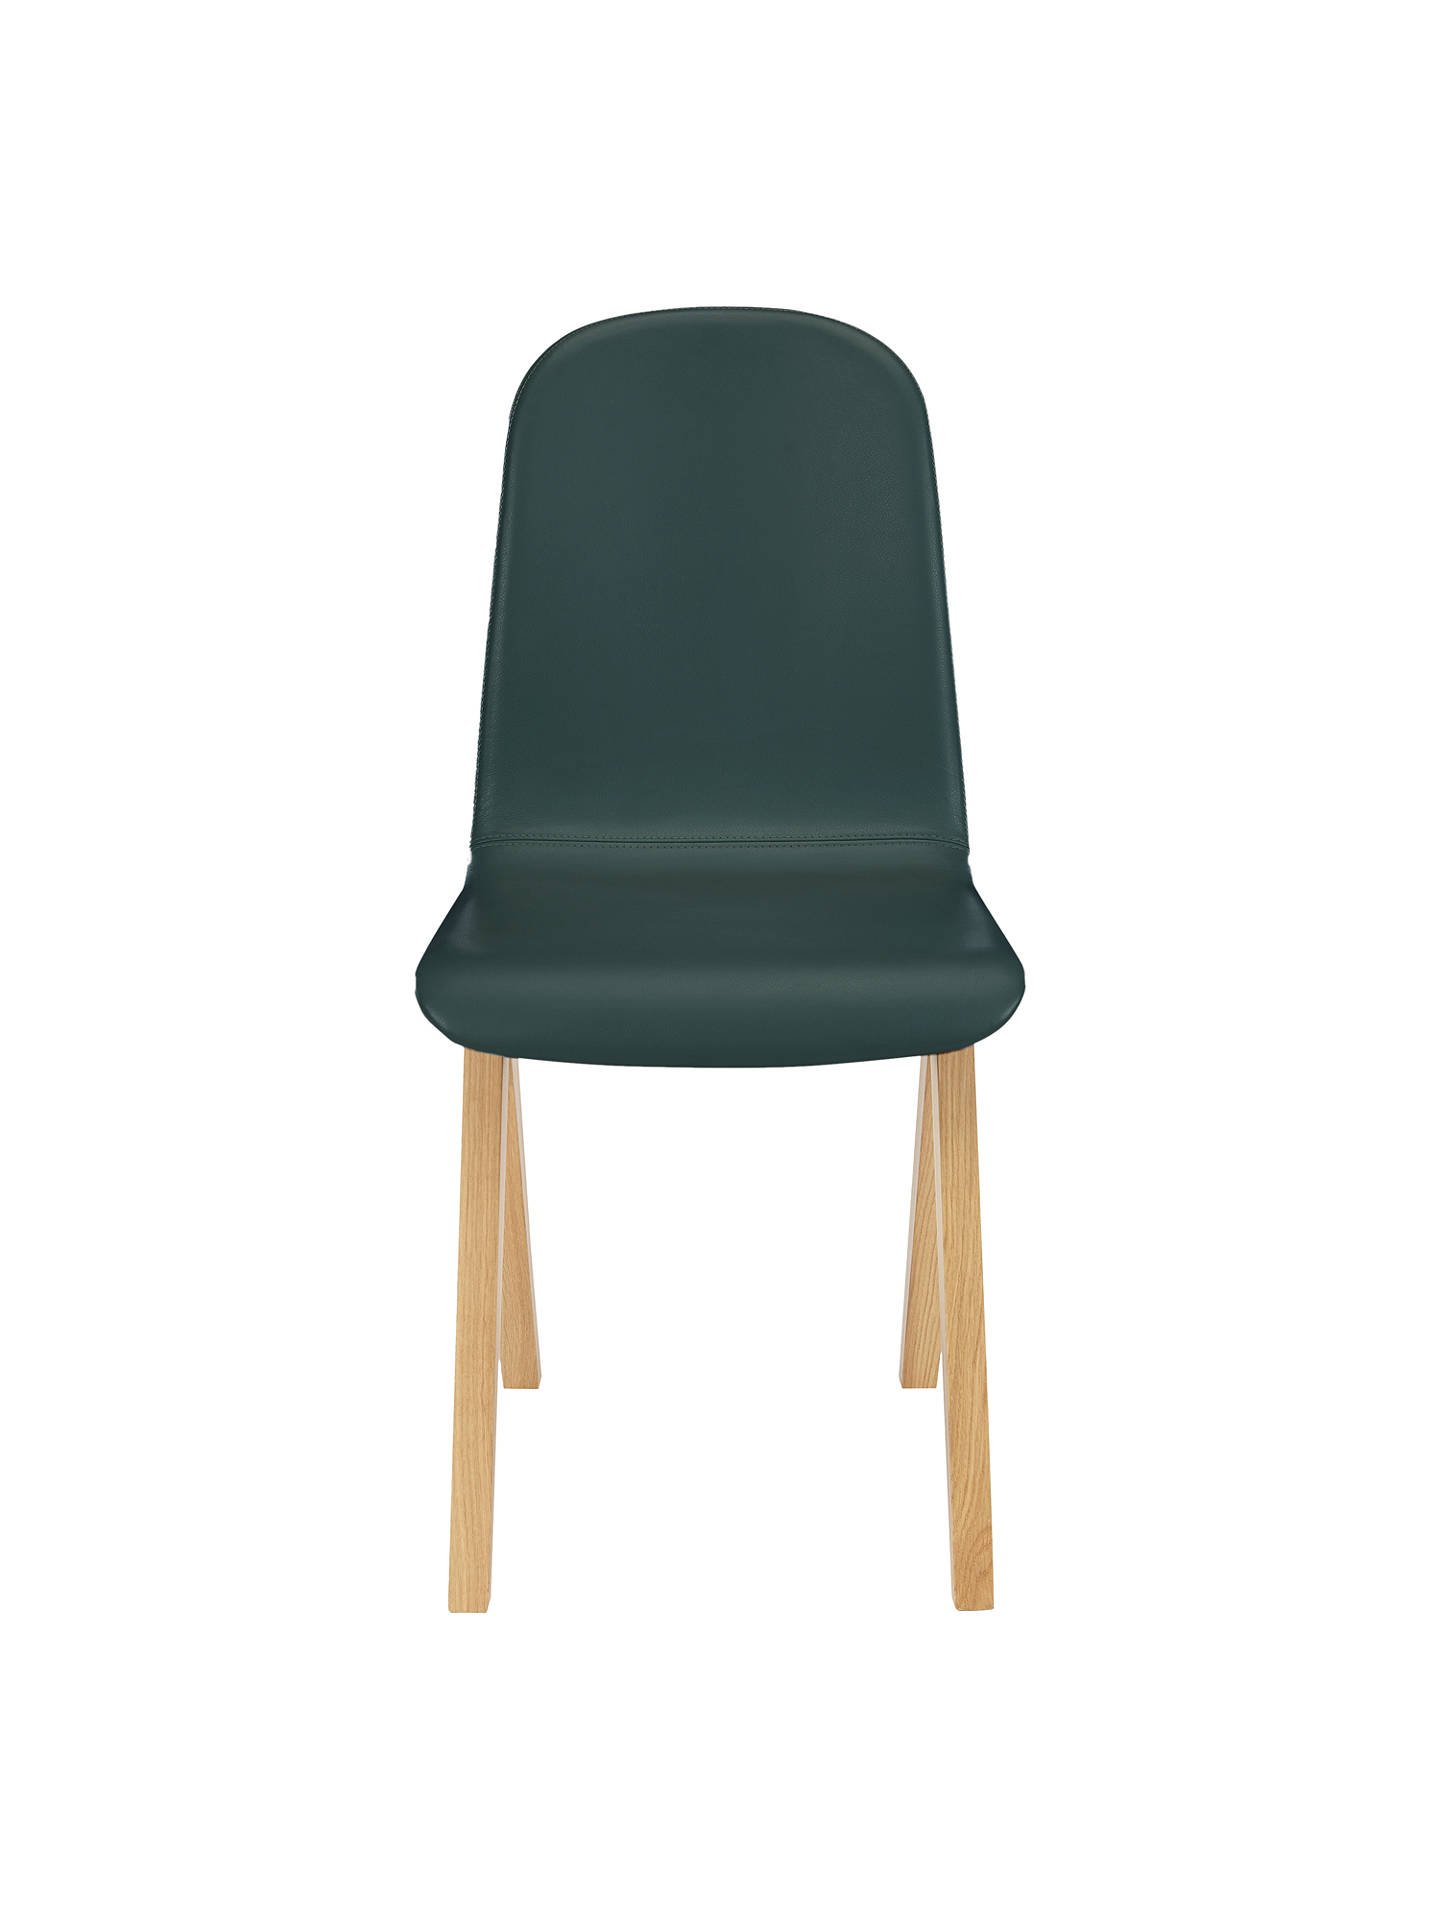 Buy Bethan Gray for John Lewis Newman Leather Upholstered Dining Chair, Green Online at johnlewis.com